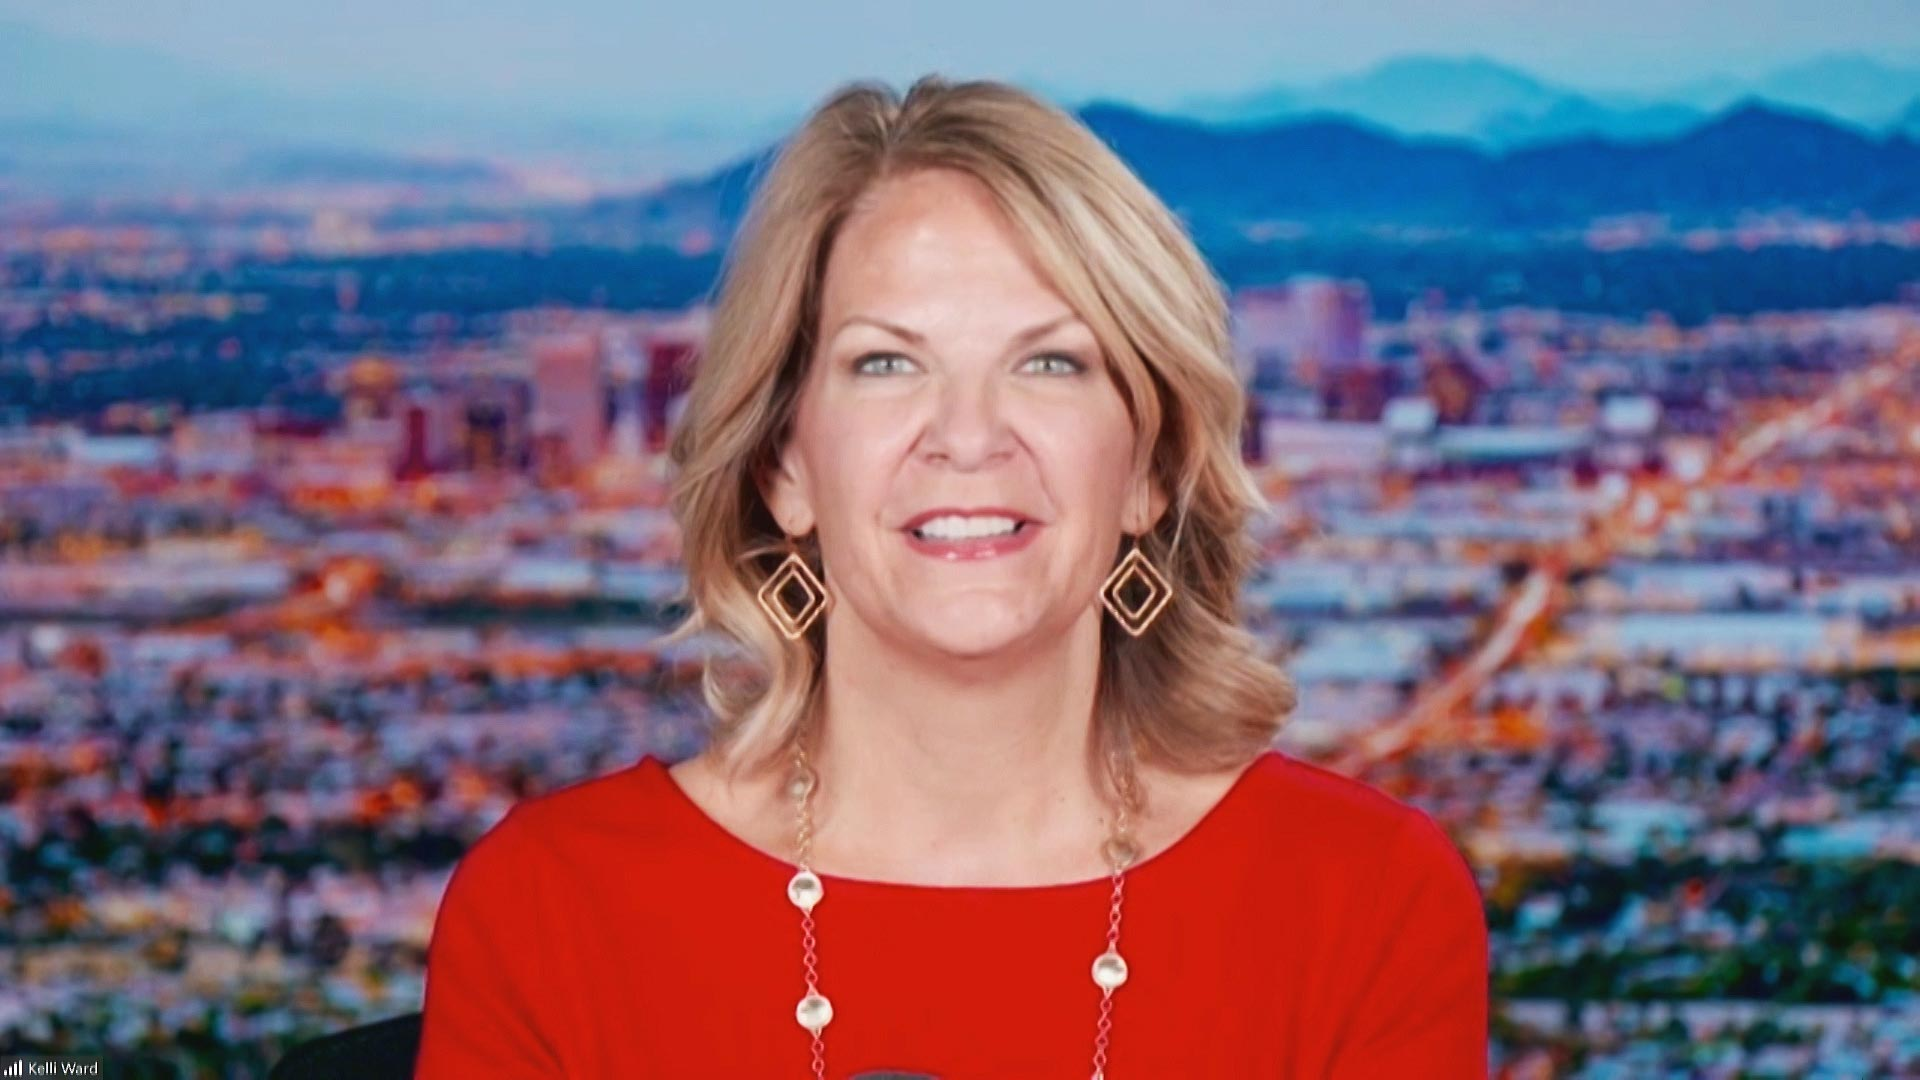 Arizona Republican Party Chair Kelli Ward during an interview with Arizona 360 on Nov. 10, 2020.